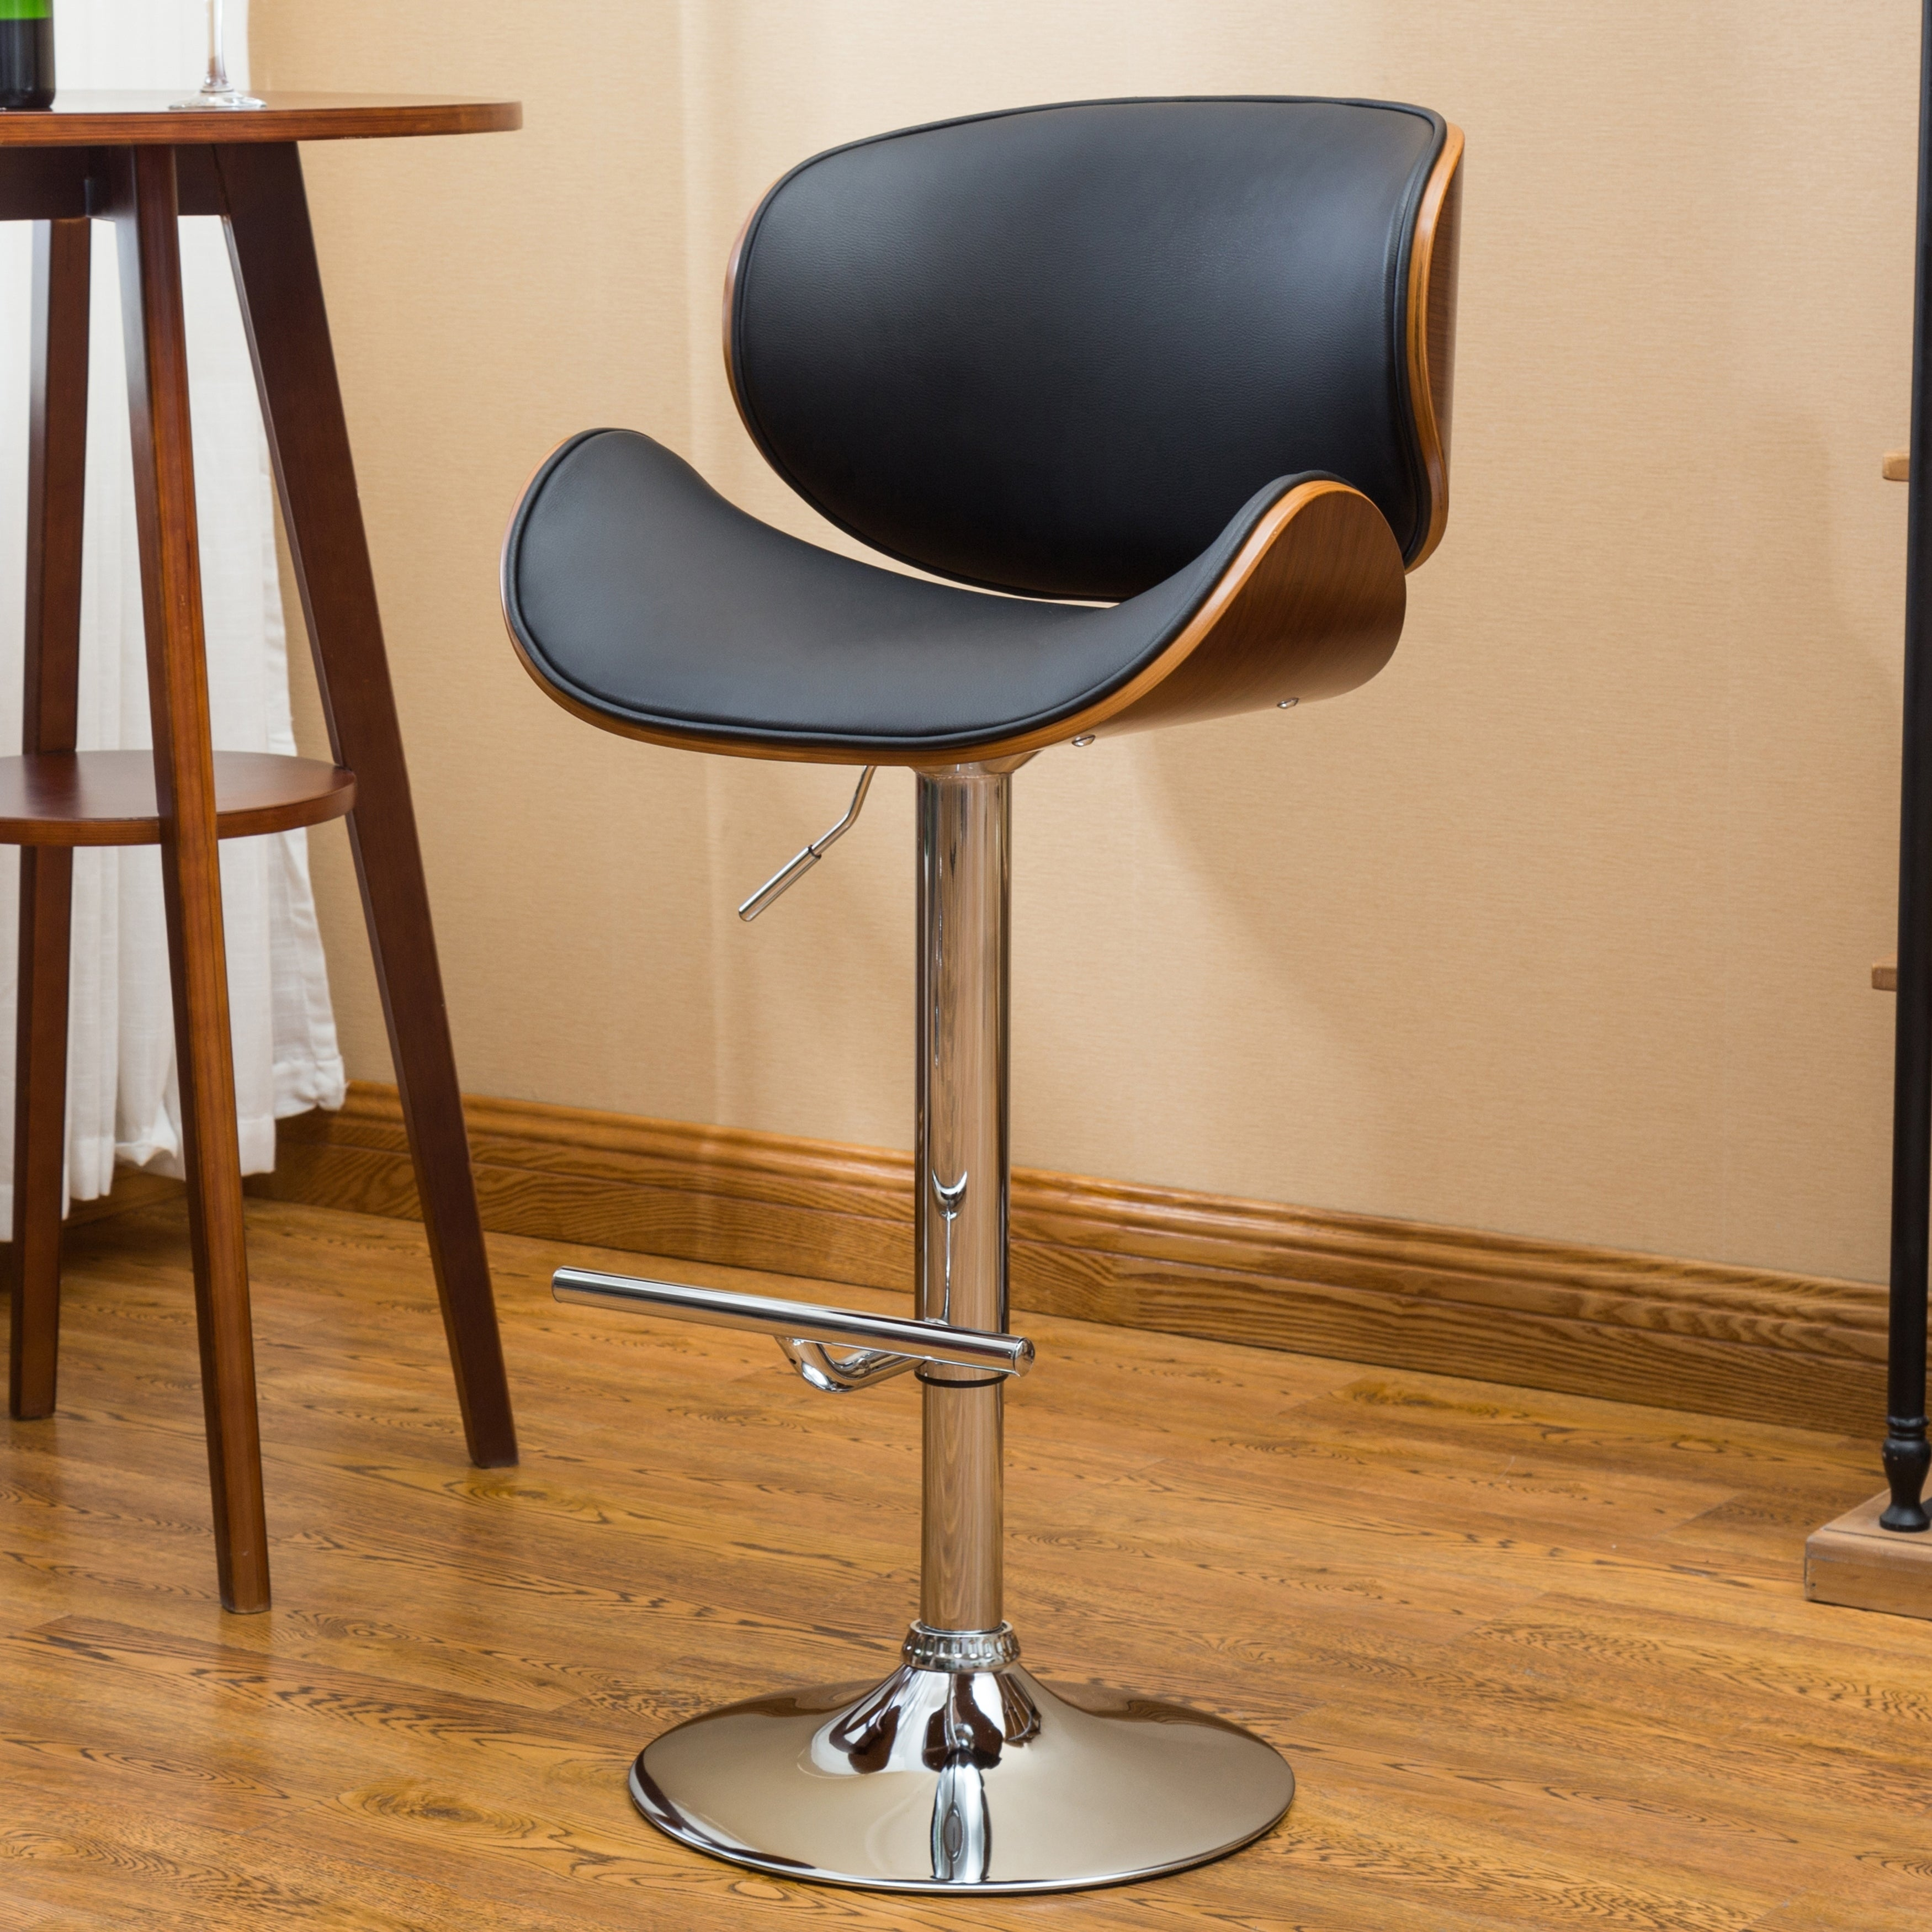 Remarkable Buy Saddle Seat Counter Bar Stools Online At Overstock Camellatalisay Diy Chair Ideas Camellatalisaycom